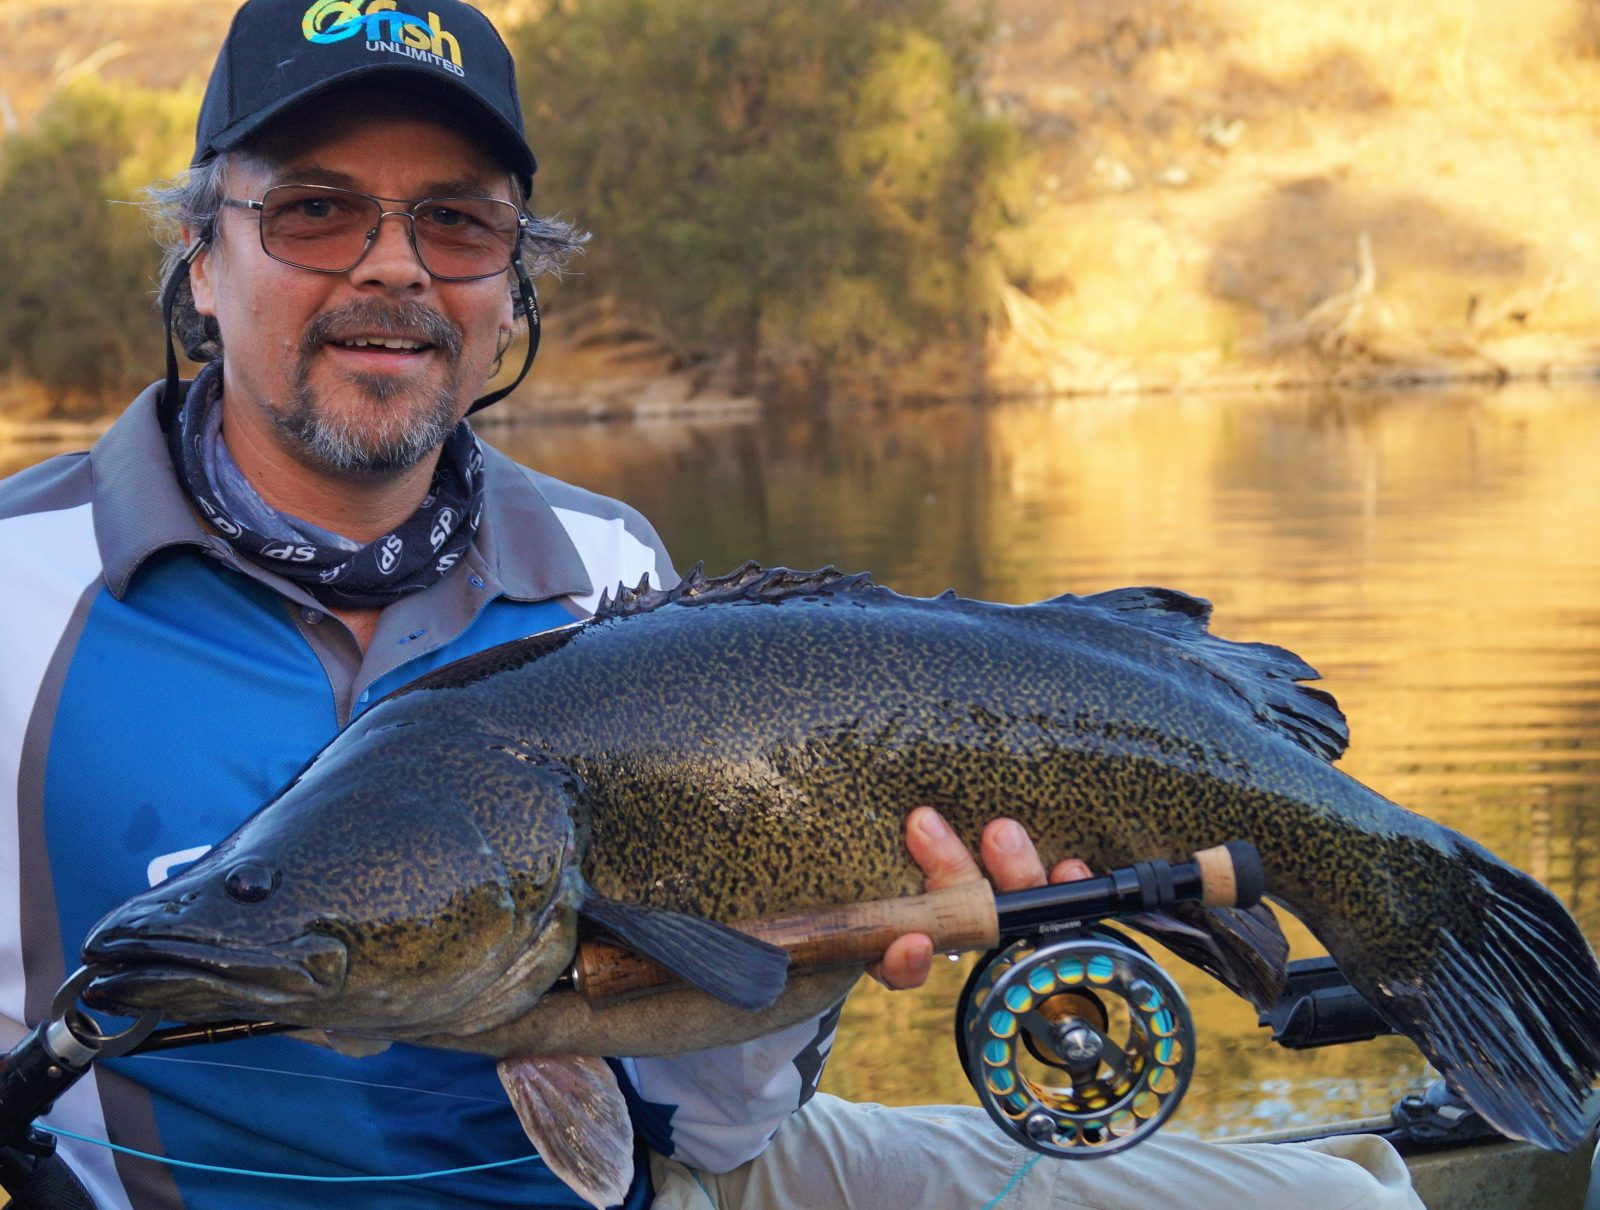 Fly fishing for Murray Cod